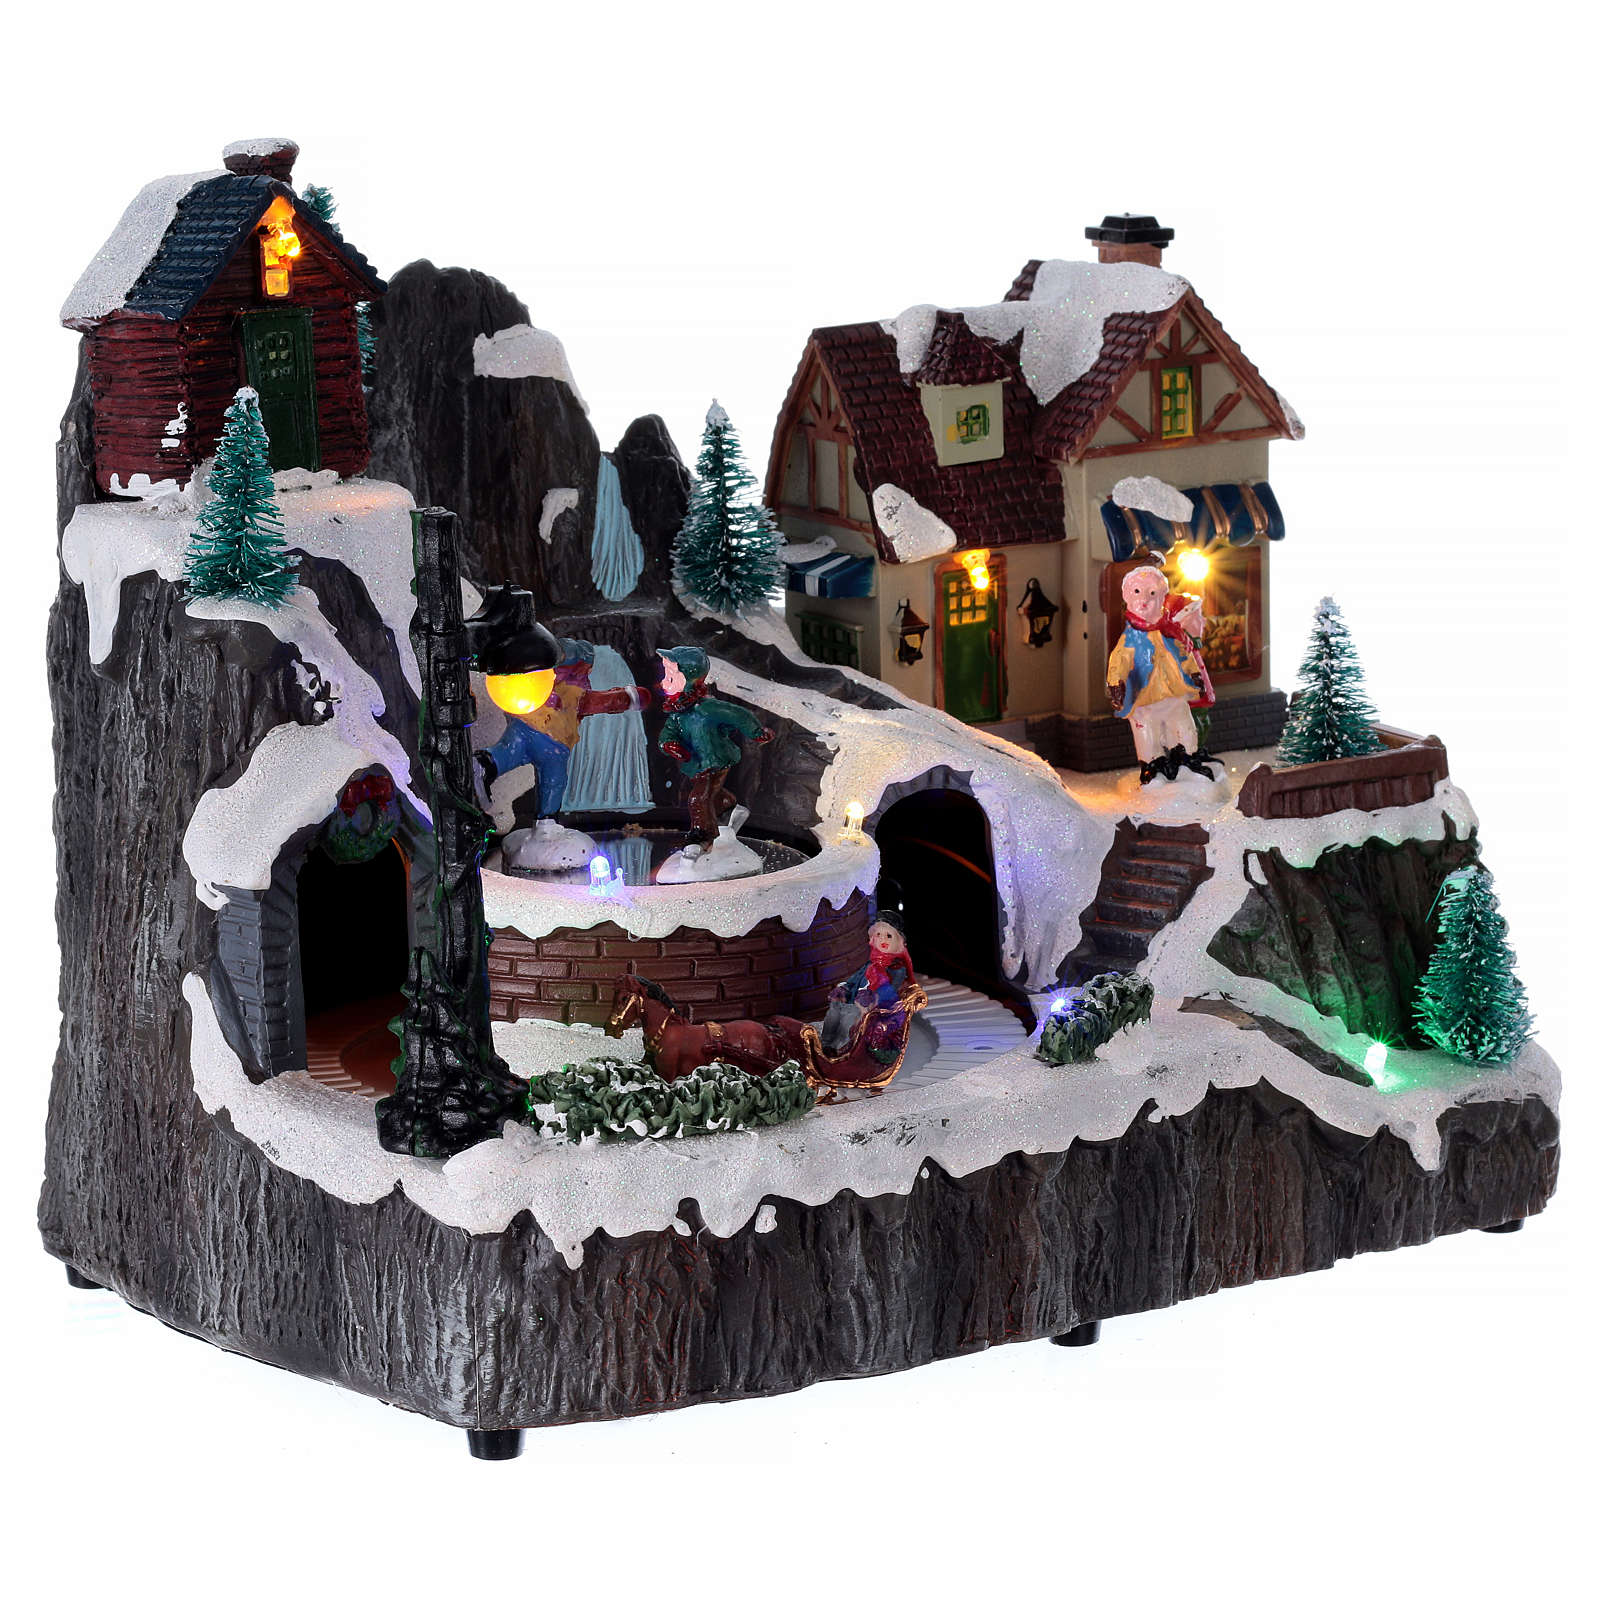 Christmas village with music, lighting, train, frozen lake 19X23X16 cm 3